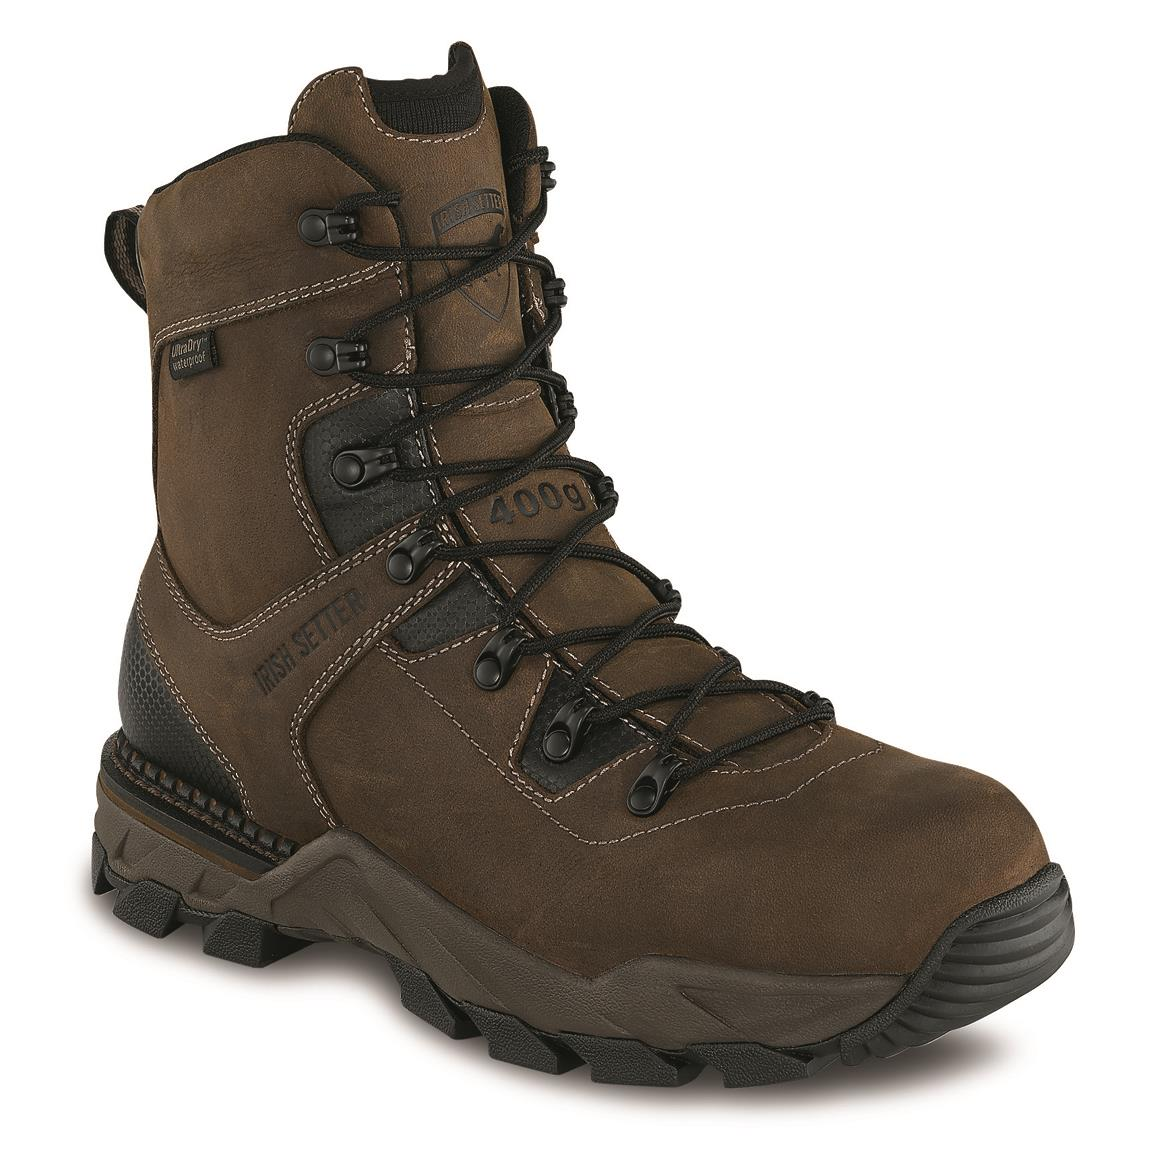 "Irish Setter Men's Crosby 8"" Waterproof Insulated Safety Toe Work Boots, 400 Gram, Brown"